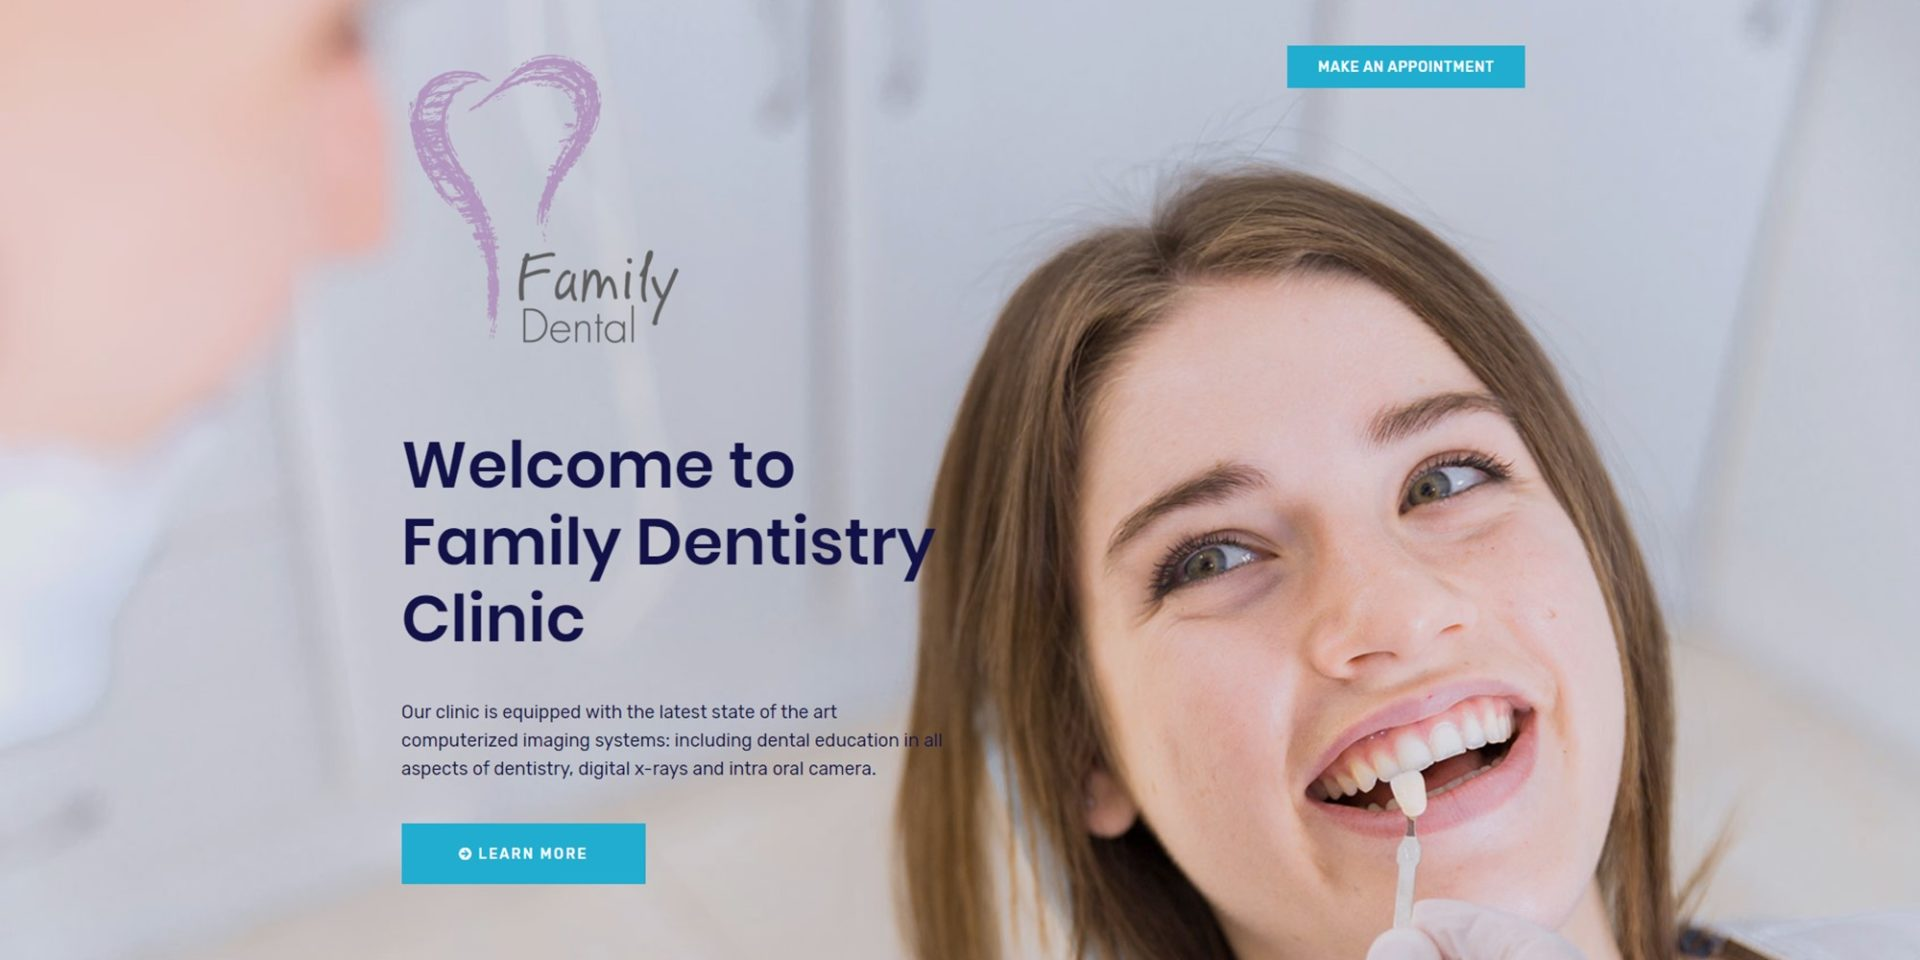 Turnkey Dental Website